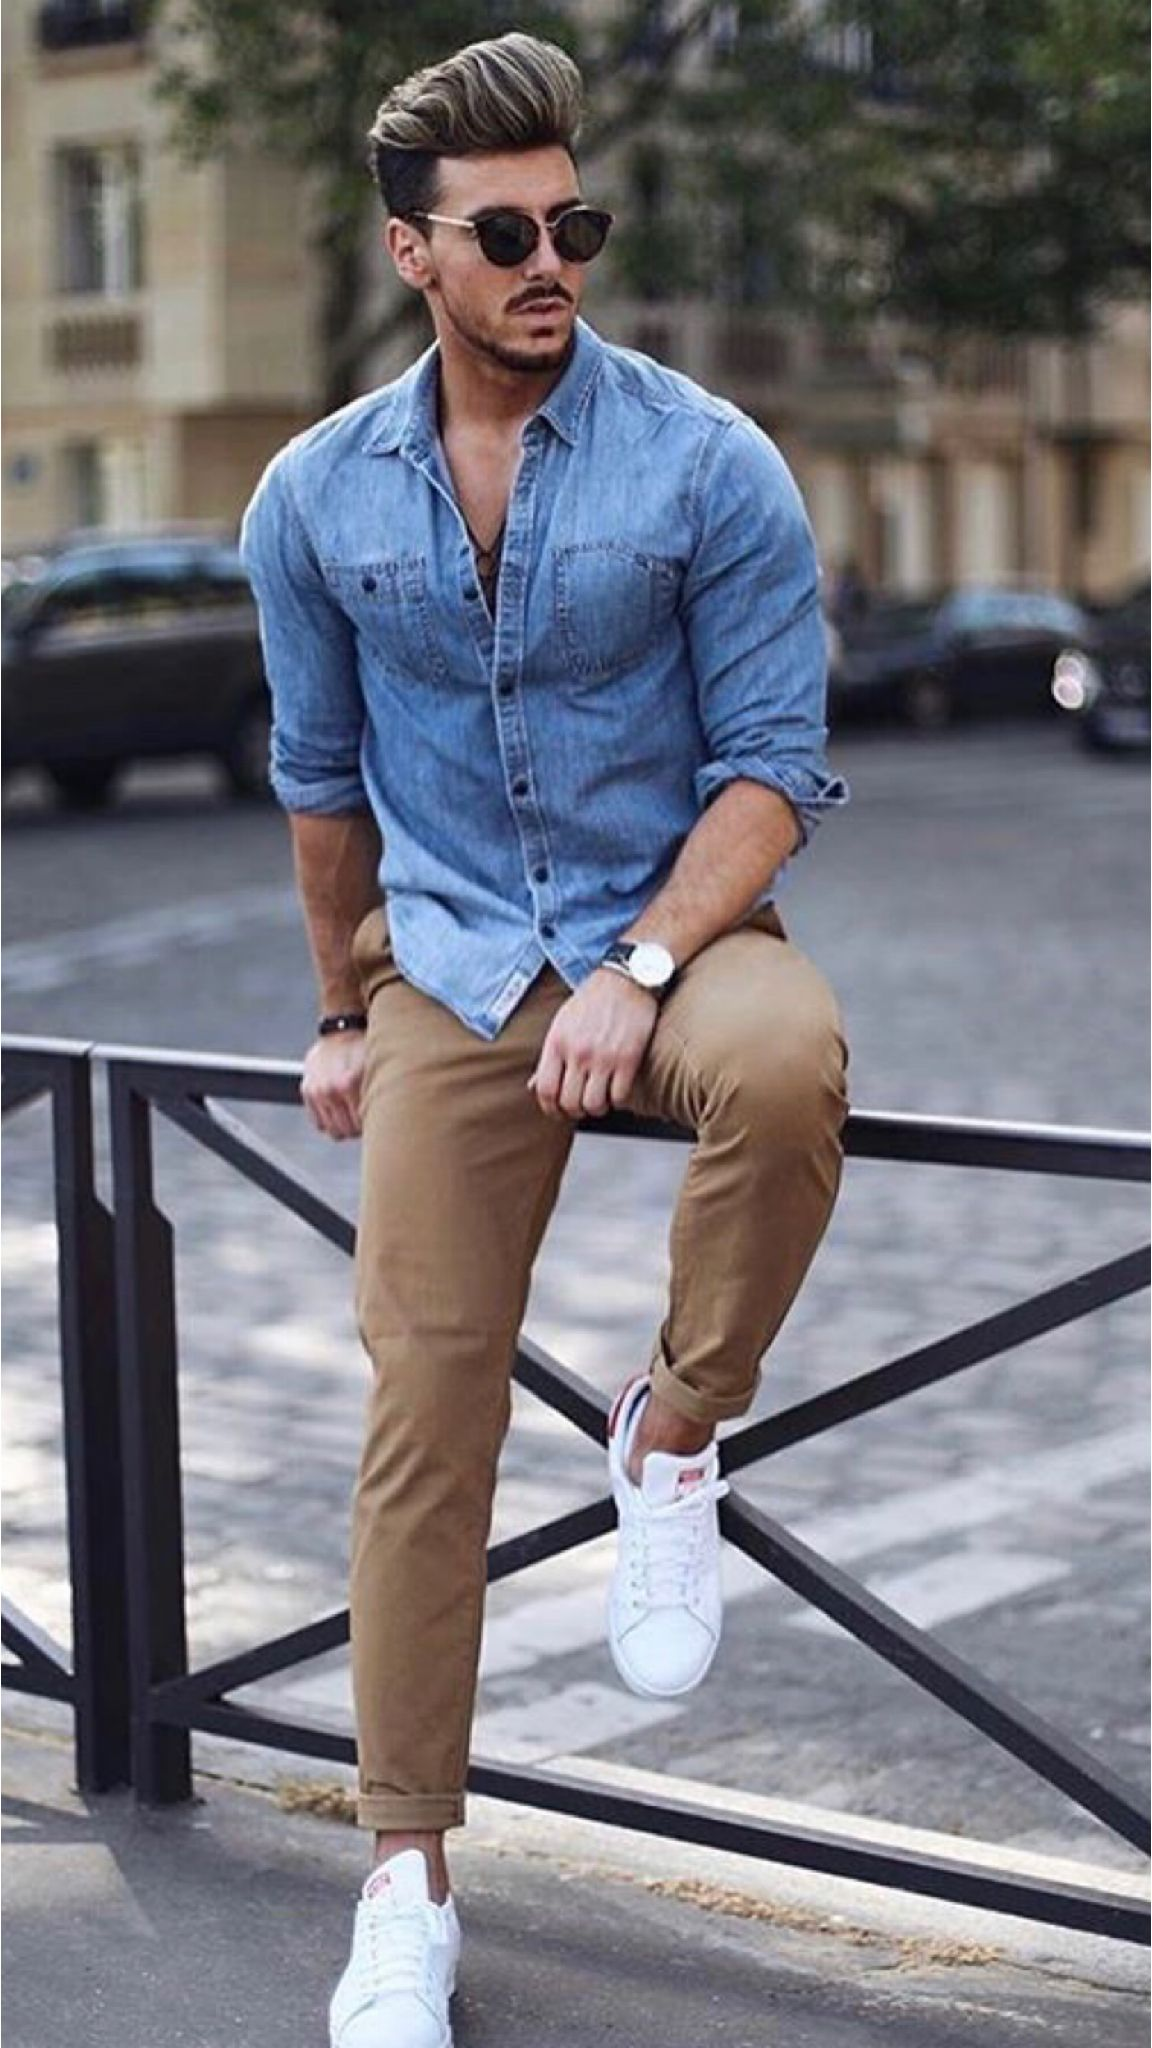 Uograde your outfit game with these 7 outfits!  Stylish men